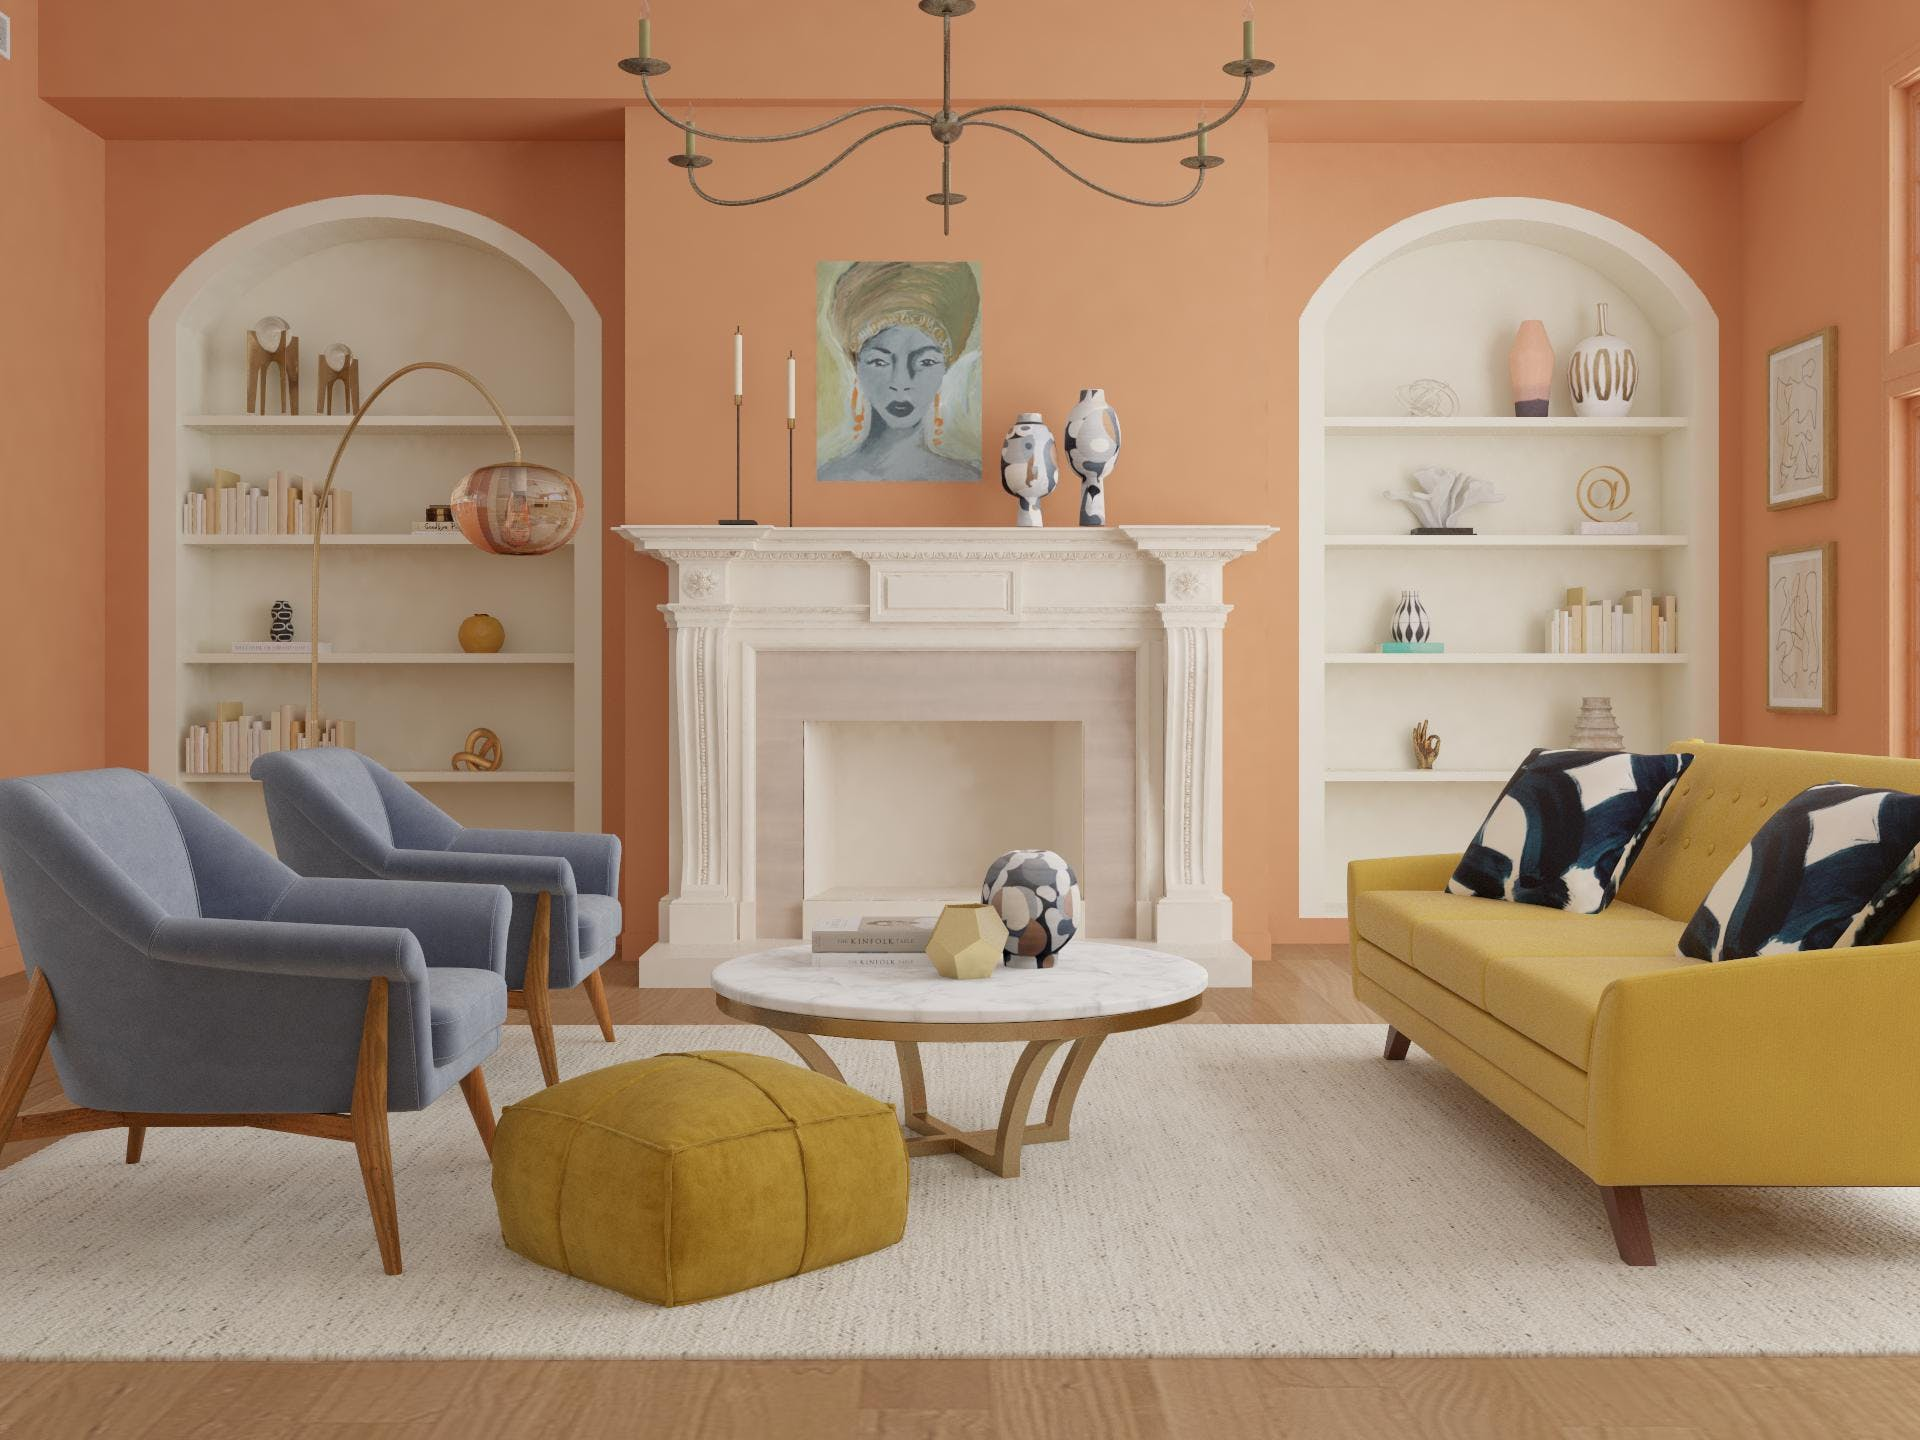 Sherbert Colors in a Refined Mid-Century-Modern Living Room